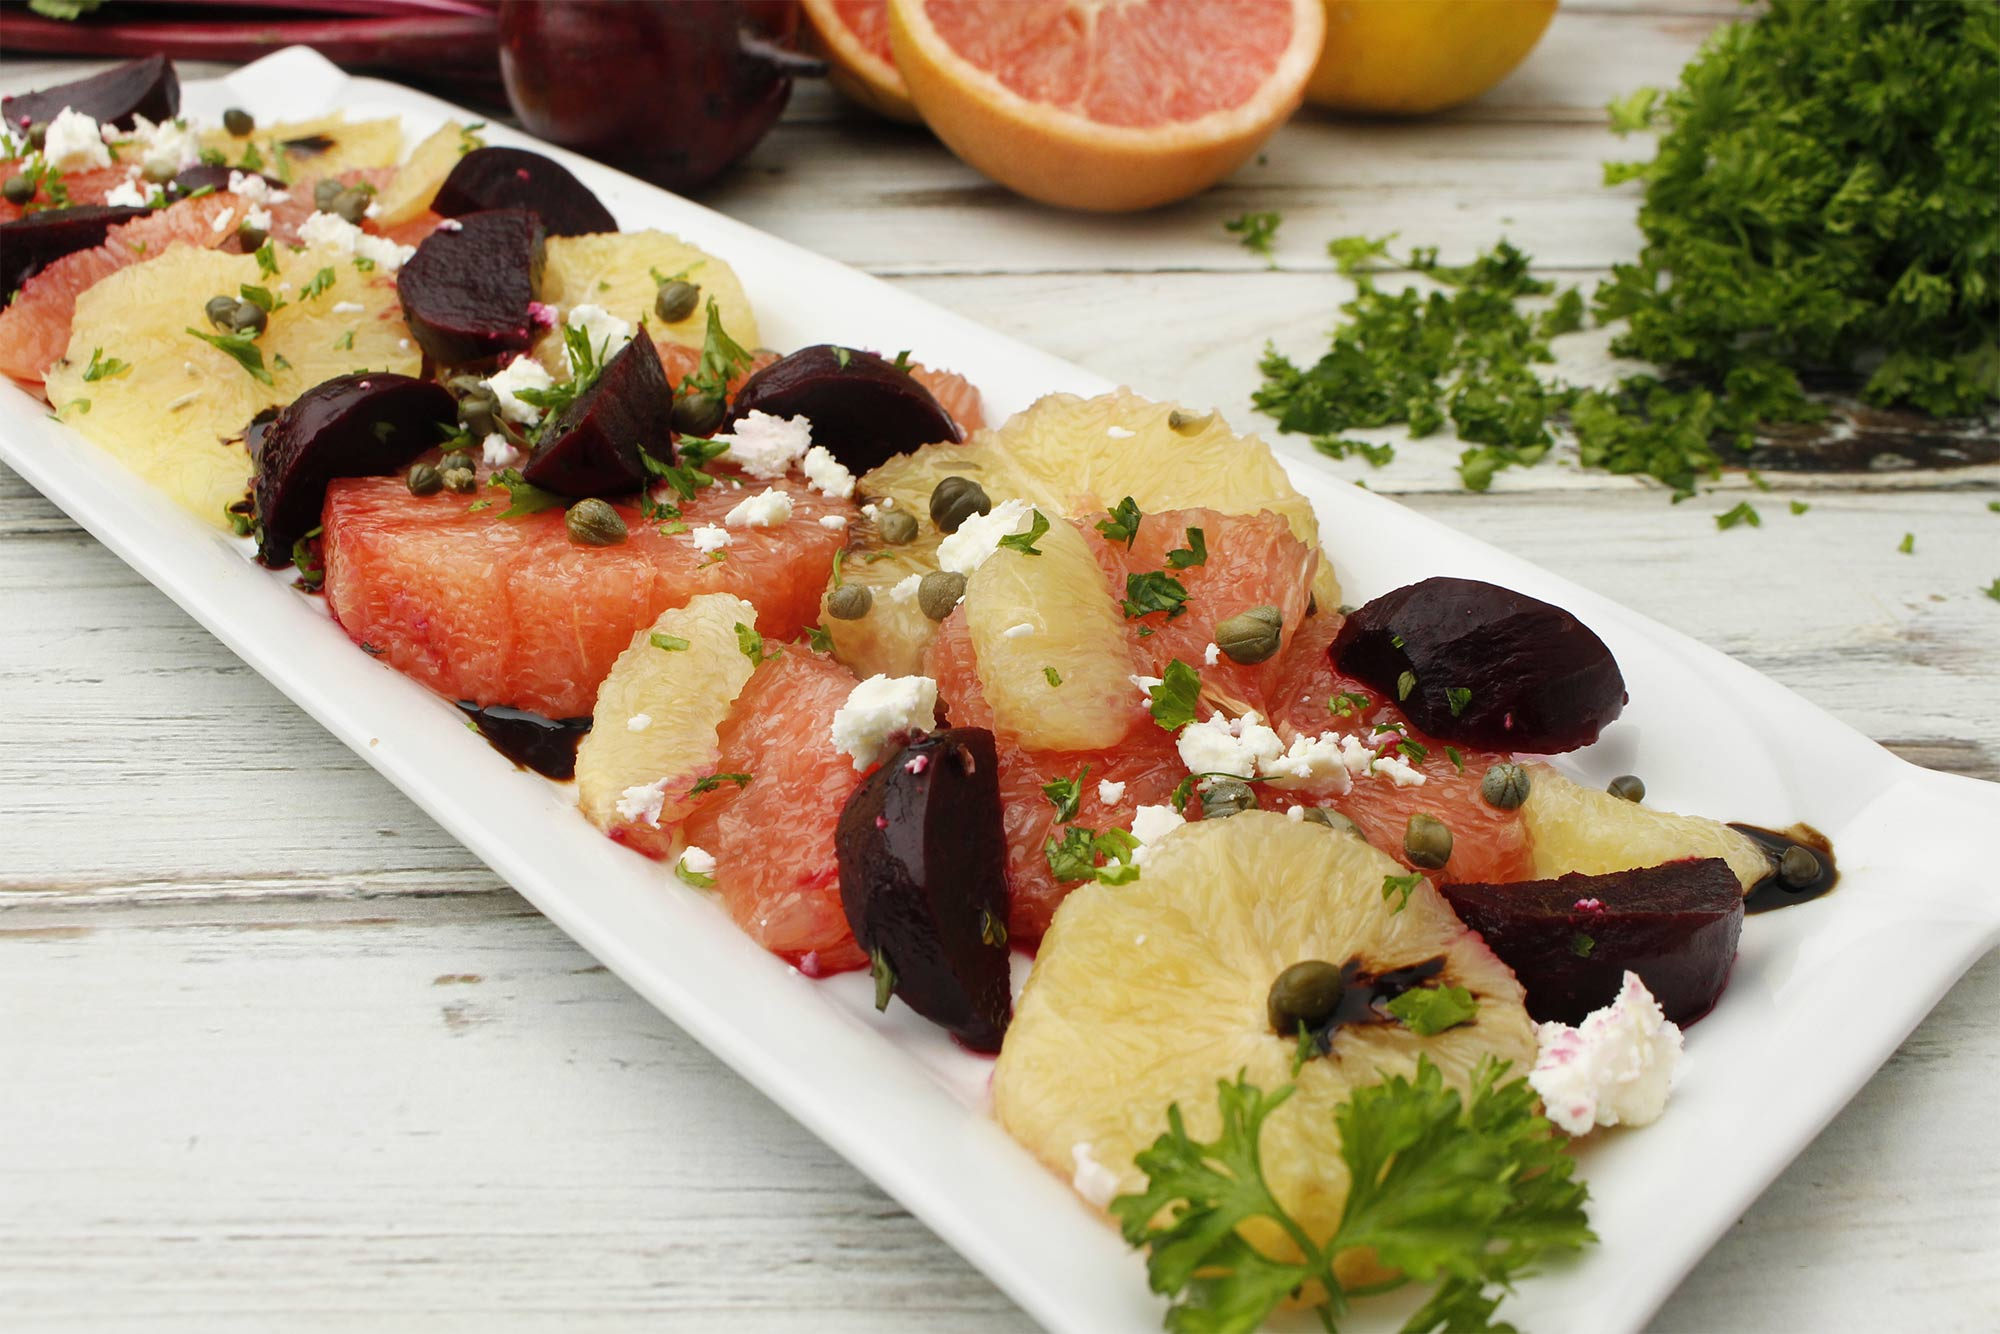 Mixed Grapefruit and Roasted Beet Salad